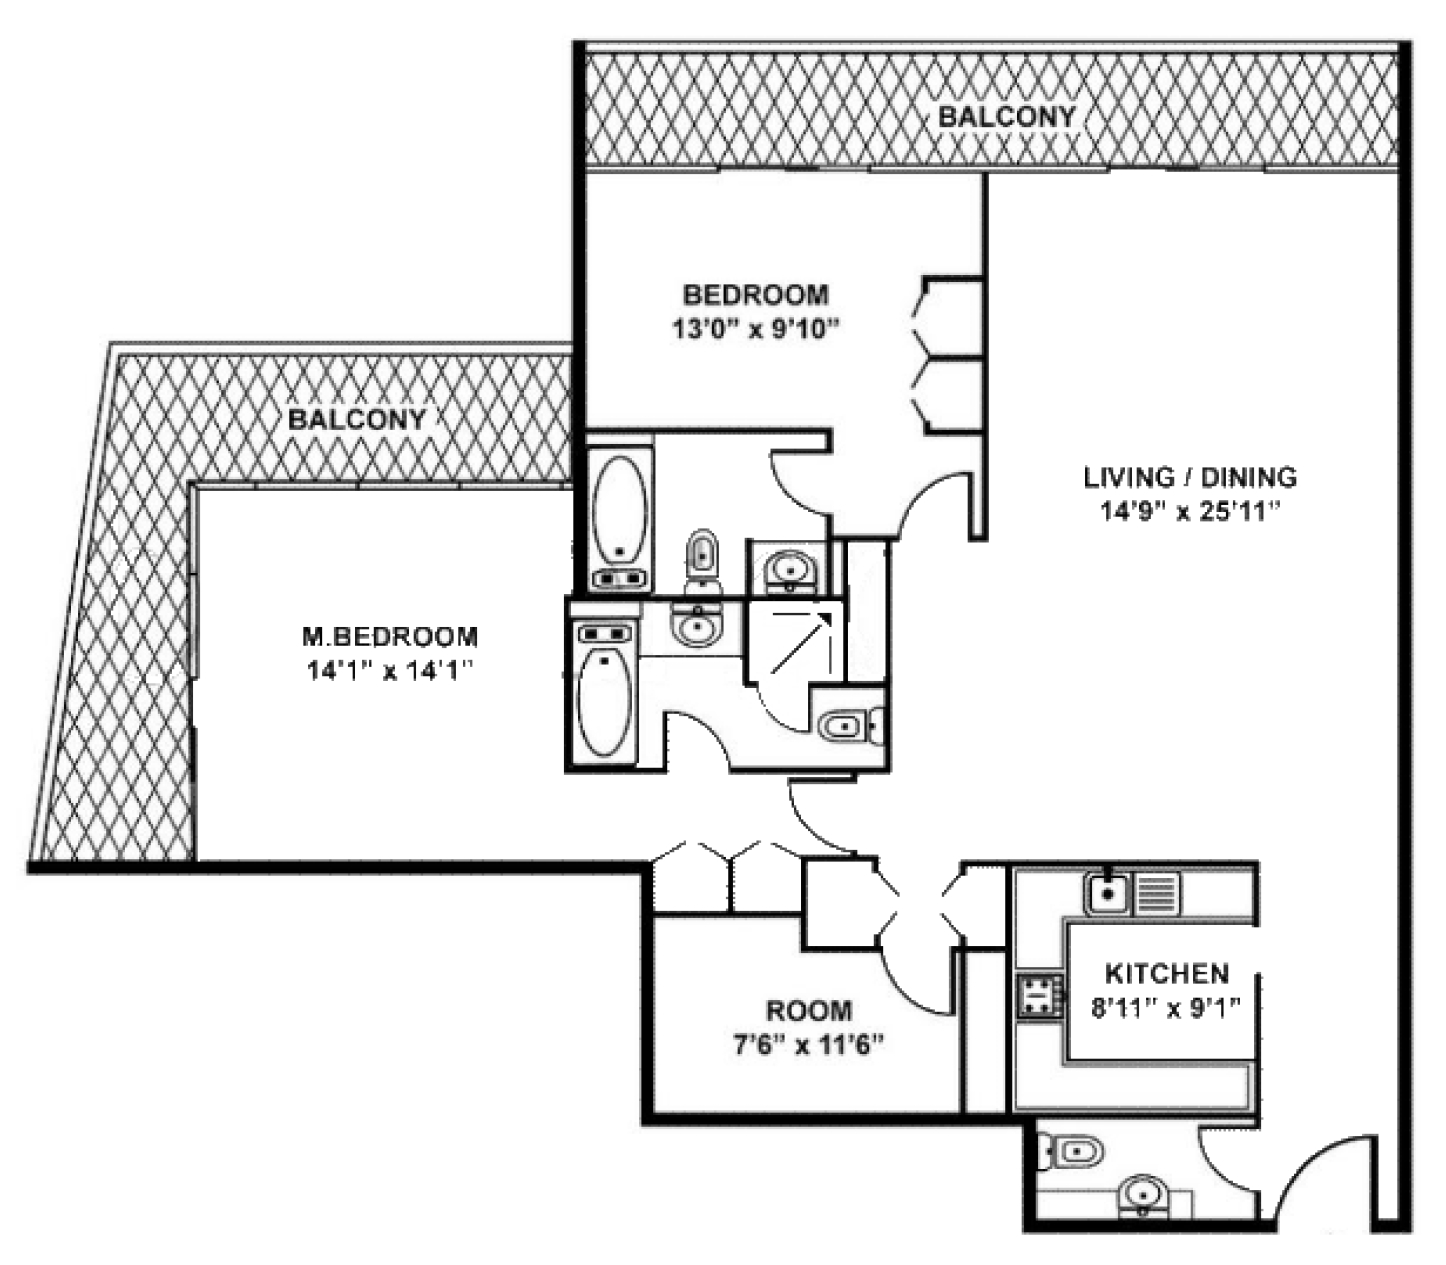 Room in addition 405042560216256773 also 8BW 2bed 1726sqft as well One Bedroom Study Floor Plan together with 401. on 2 bedroom apartment plan